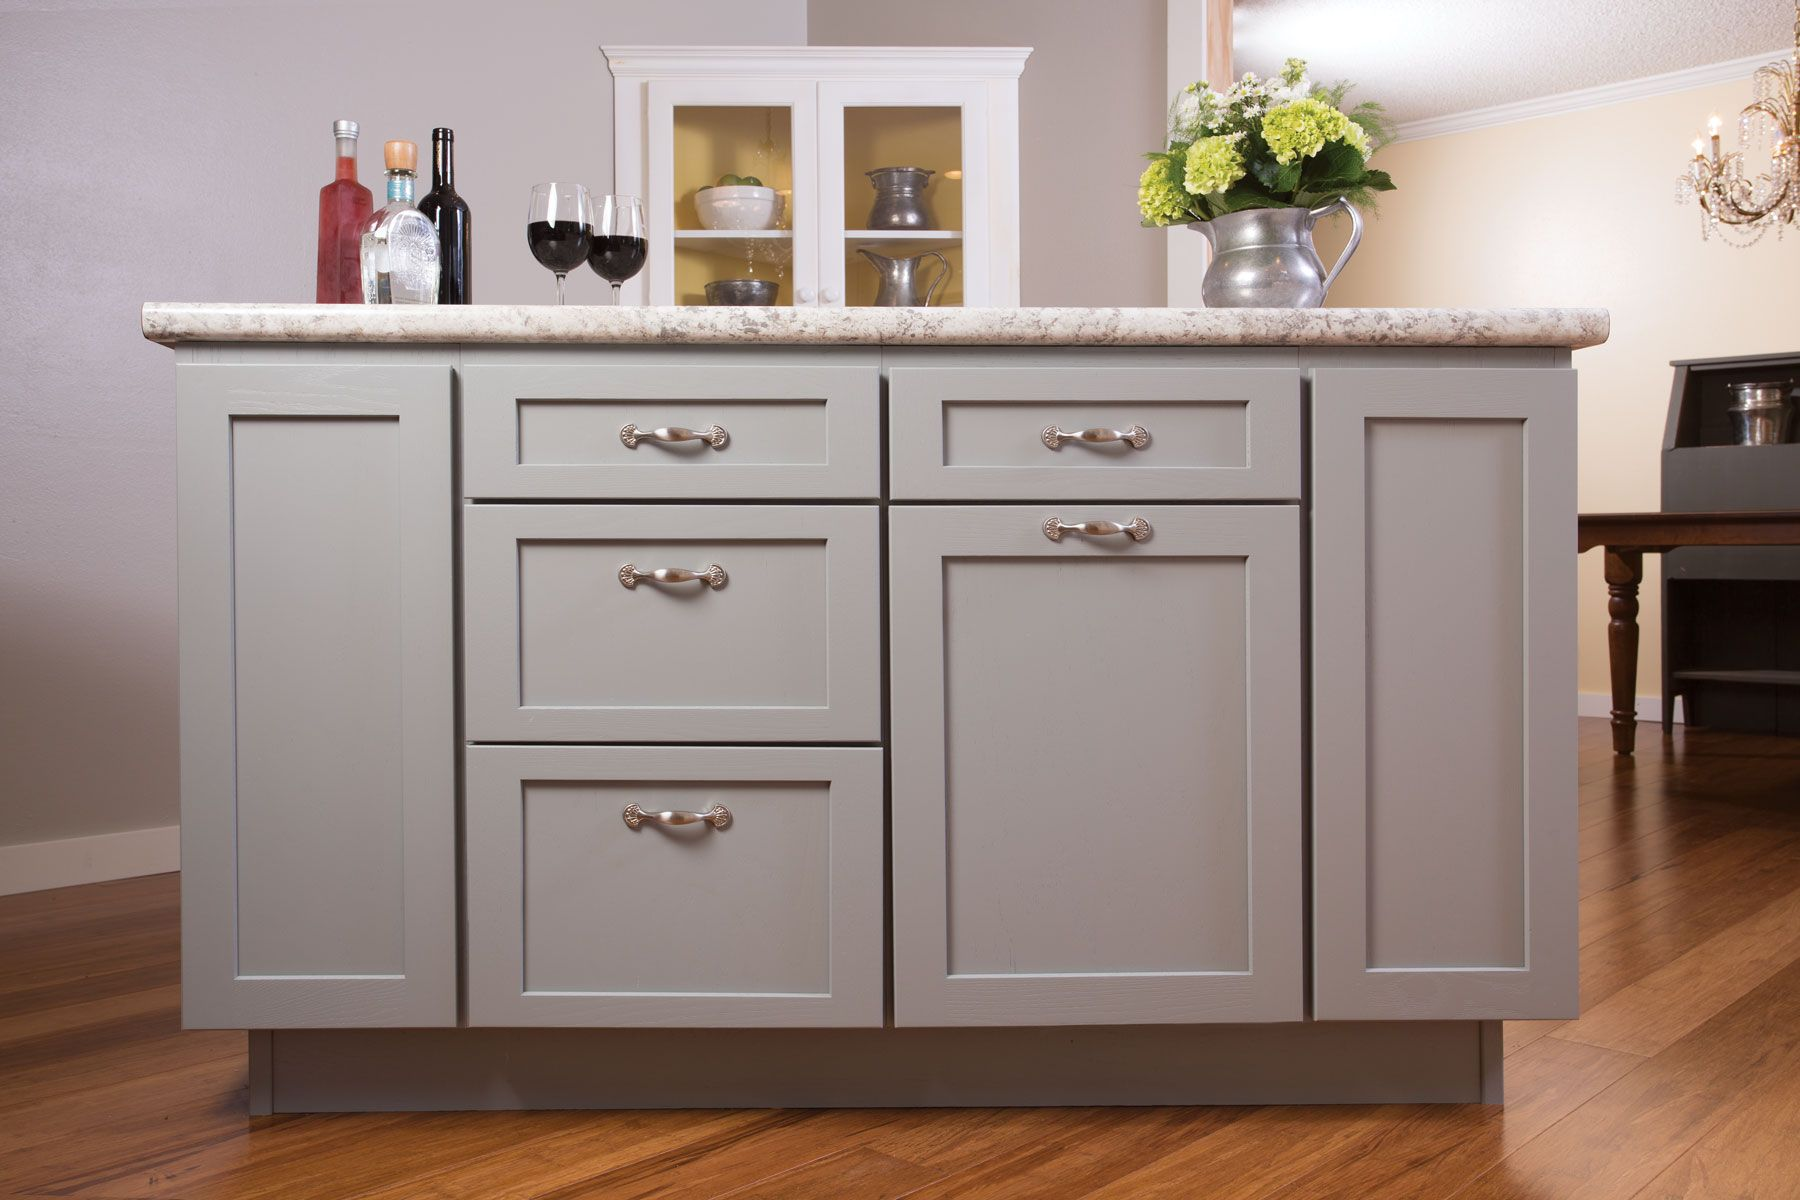 A Remodel In Central Sioux Falls Turned A Forgettable Kitchen Into A Vibrant Gathering Space Jeff Ptacek One Wall Kitchen Distressed Cabinets Kitchen Design